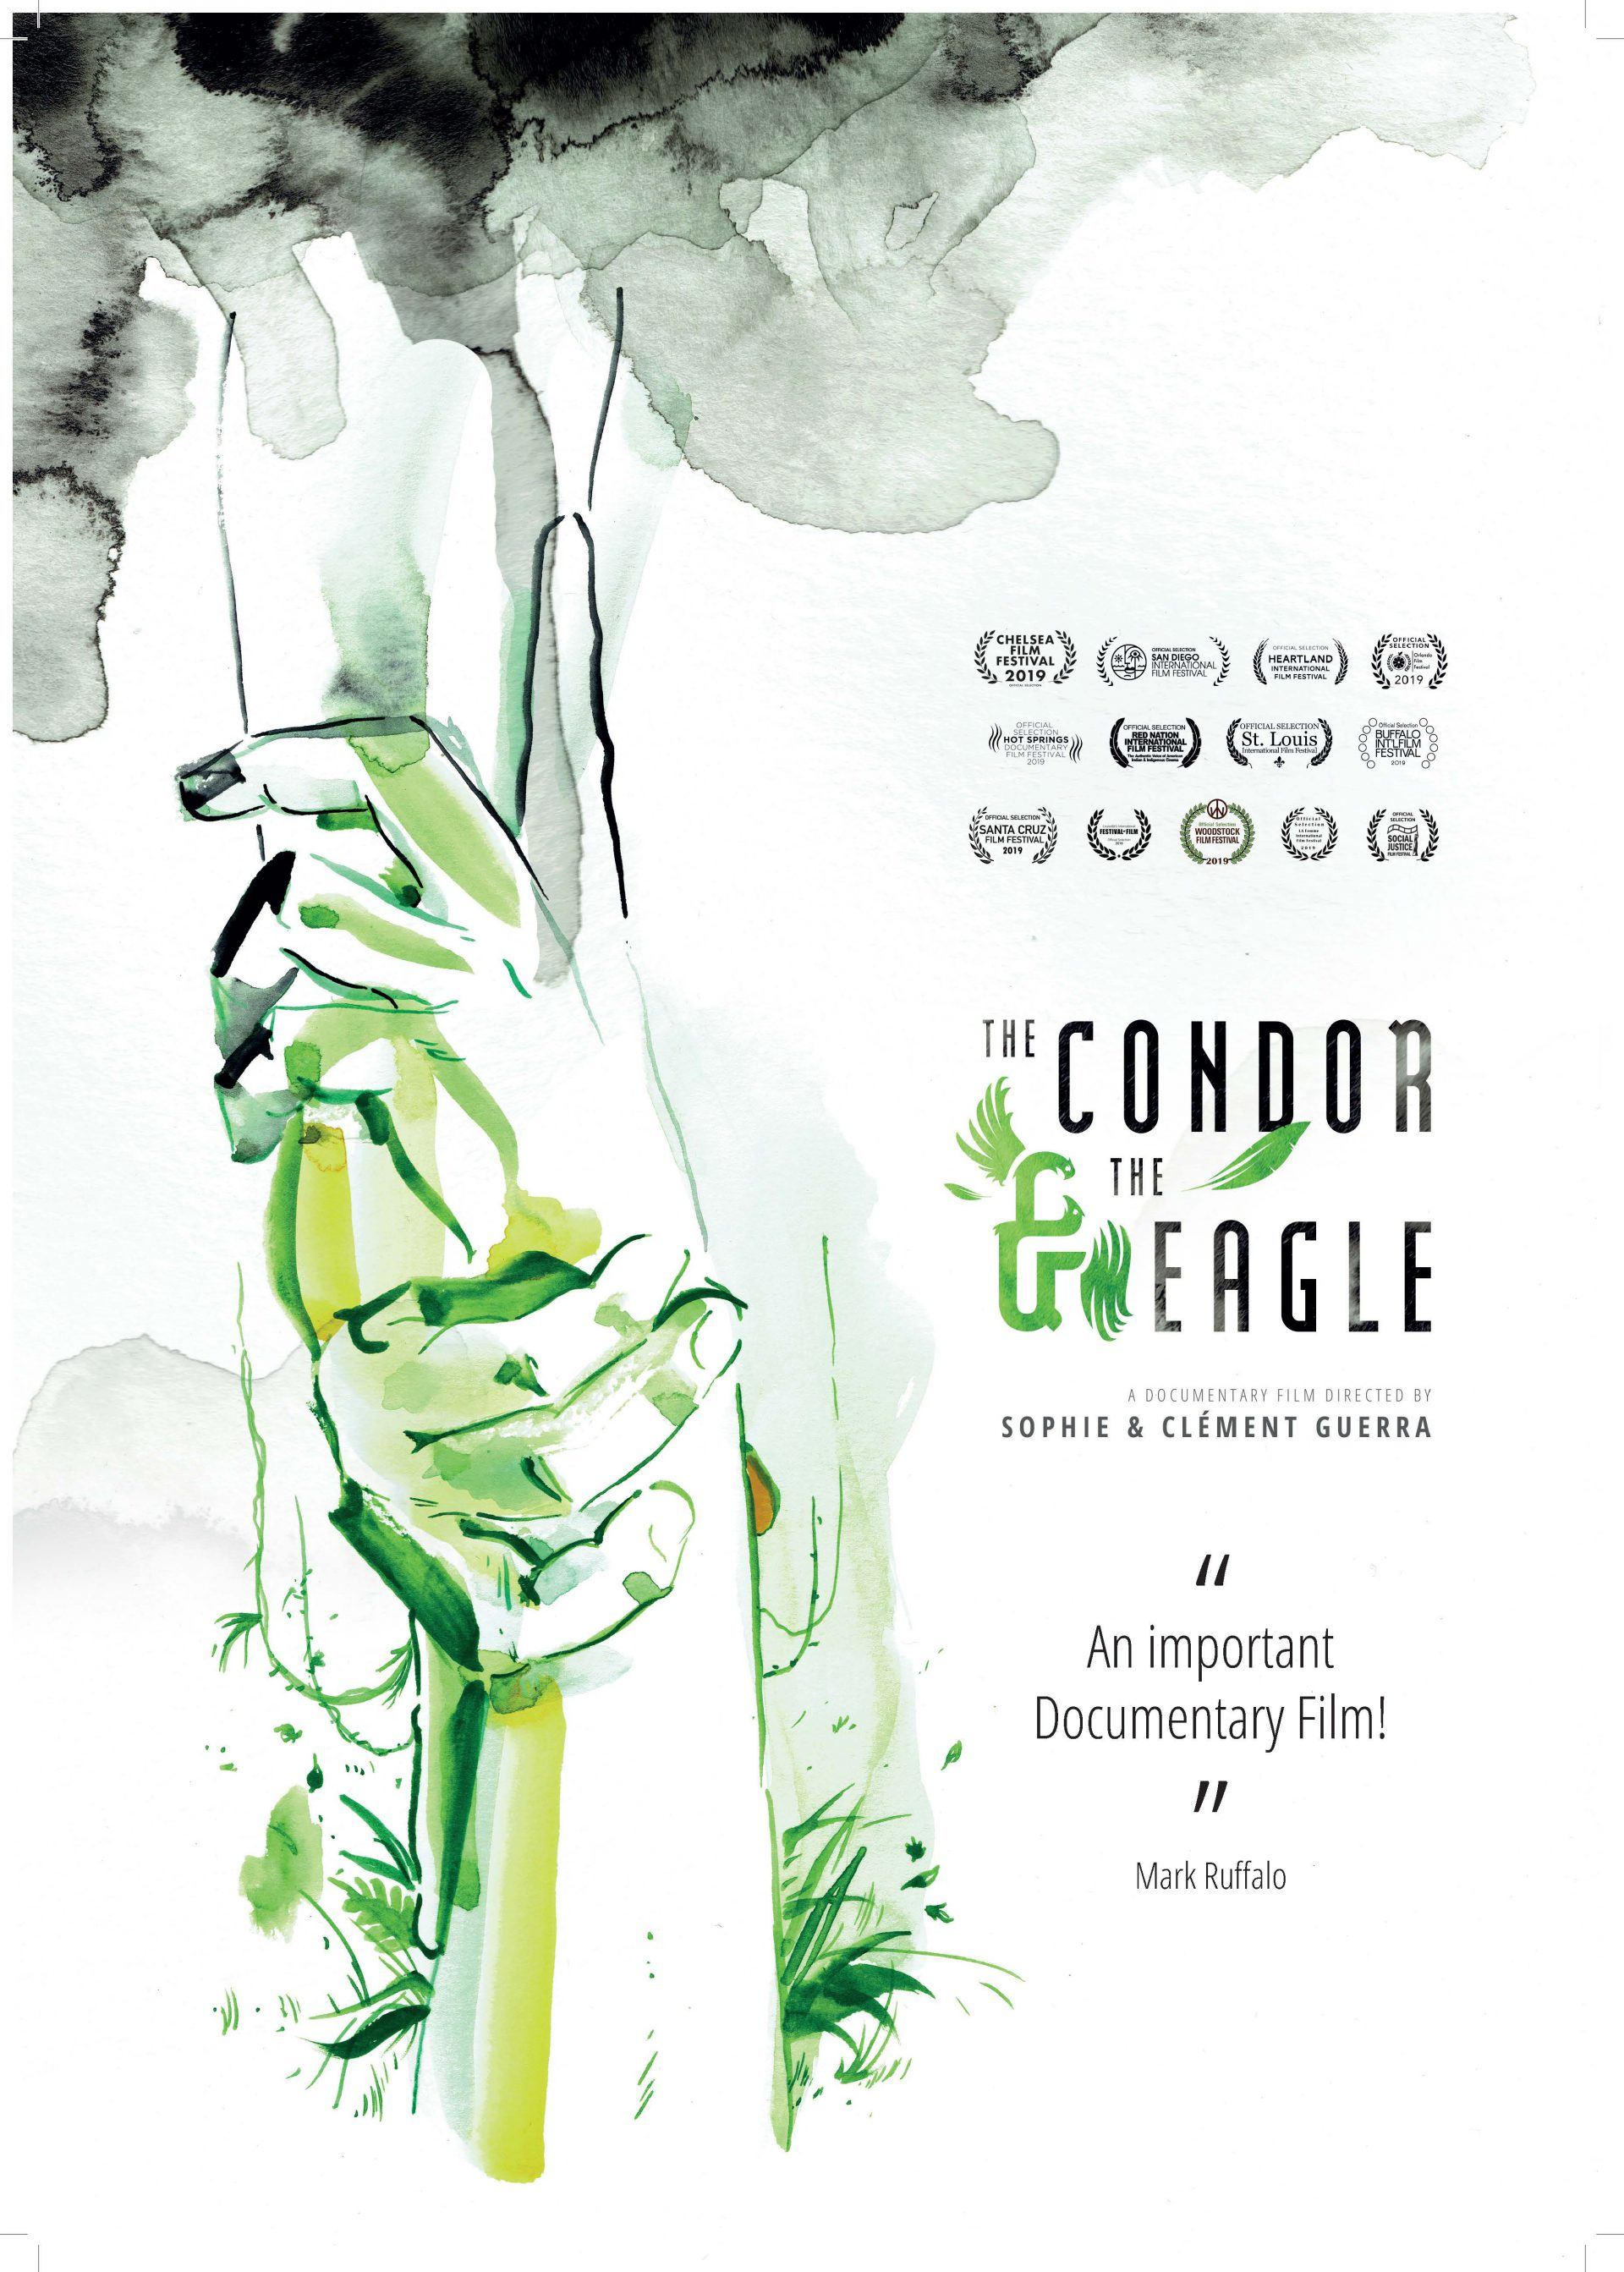 Poster the Condor and the eagle + awards